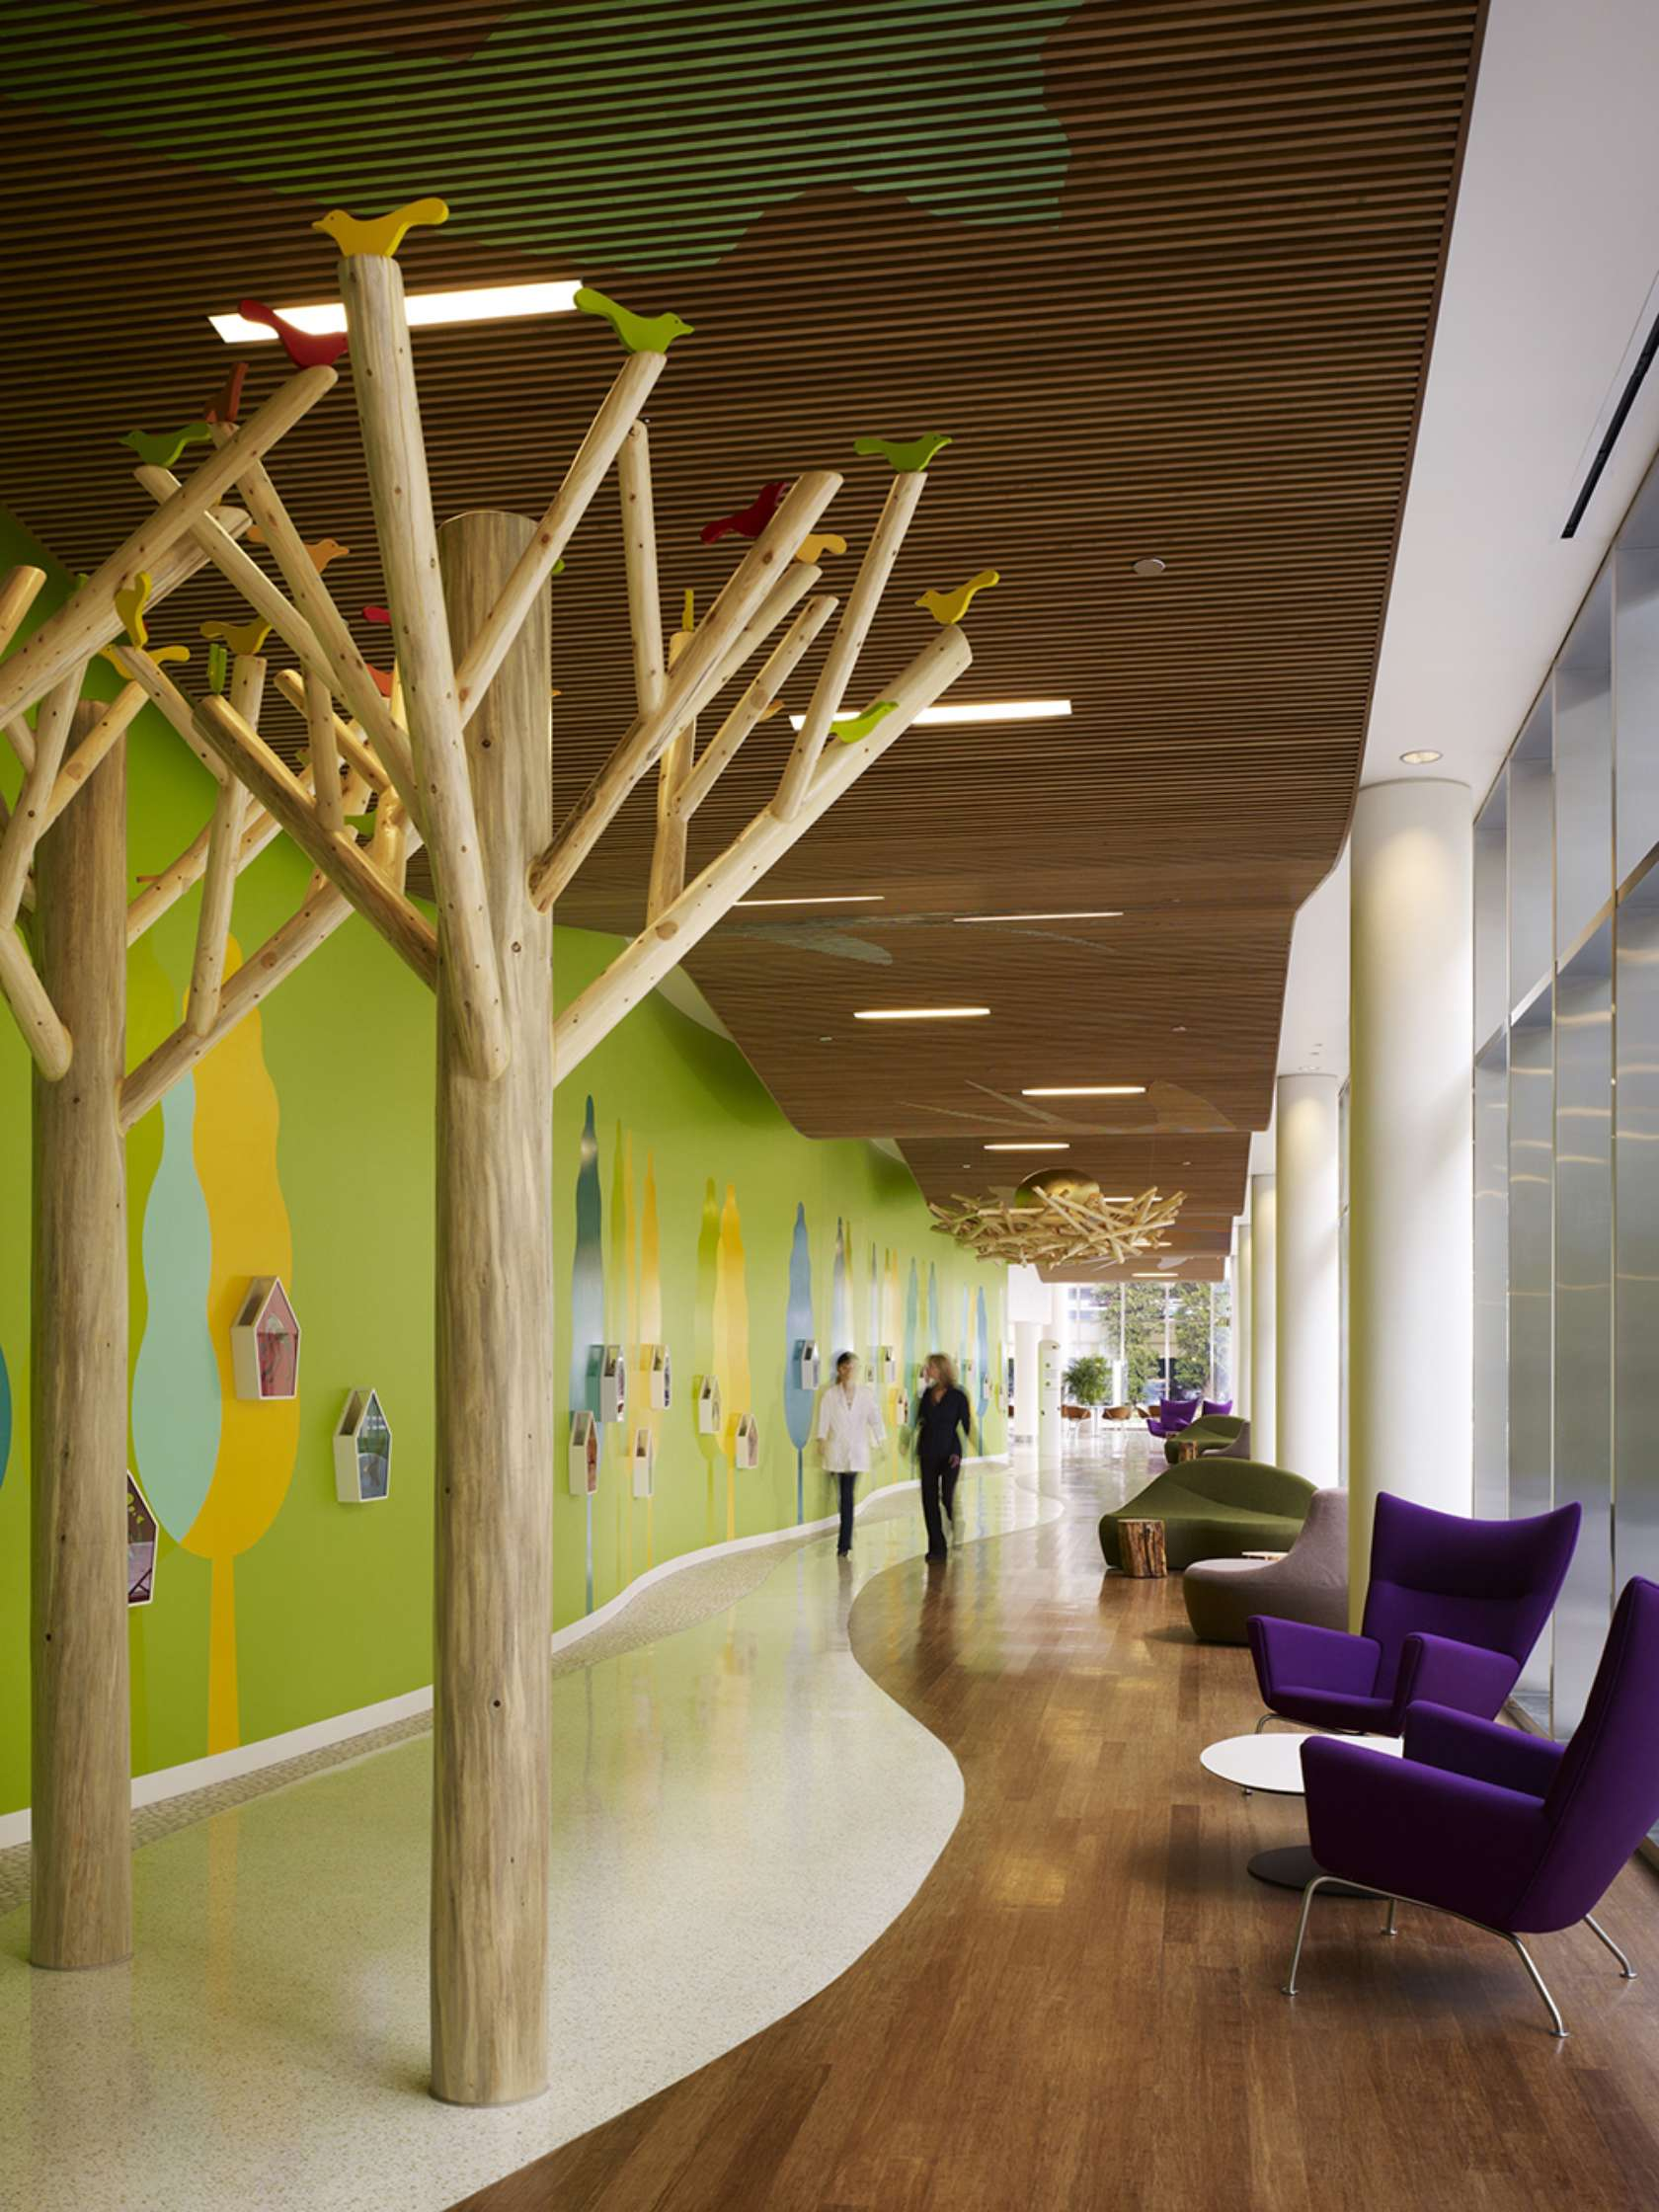 Randall children 39 s hospital at legacy emanuel architizer for Interior design firms europe